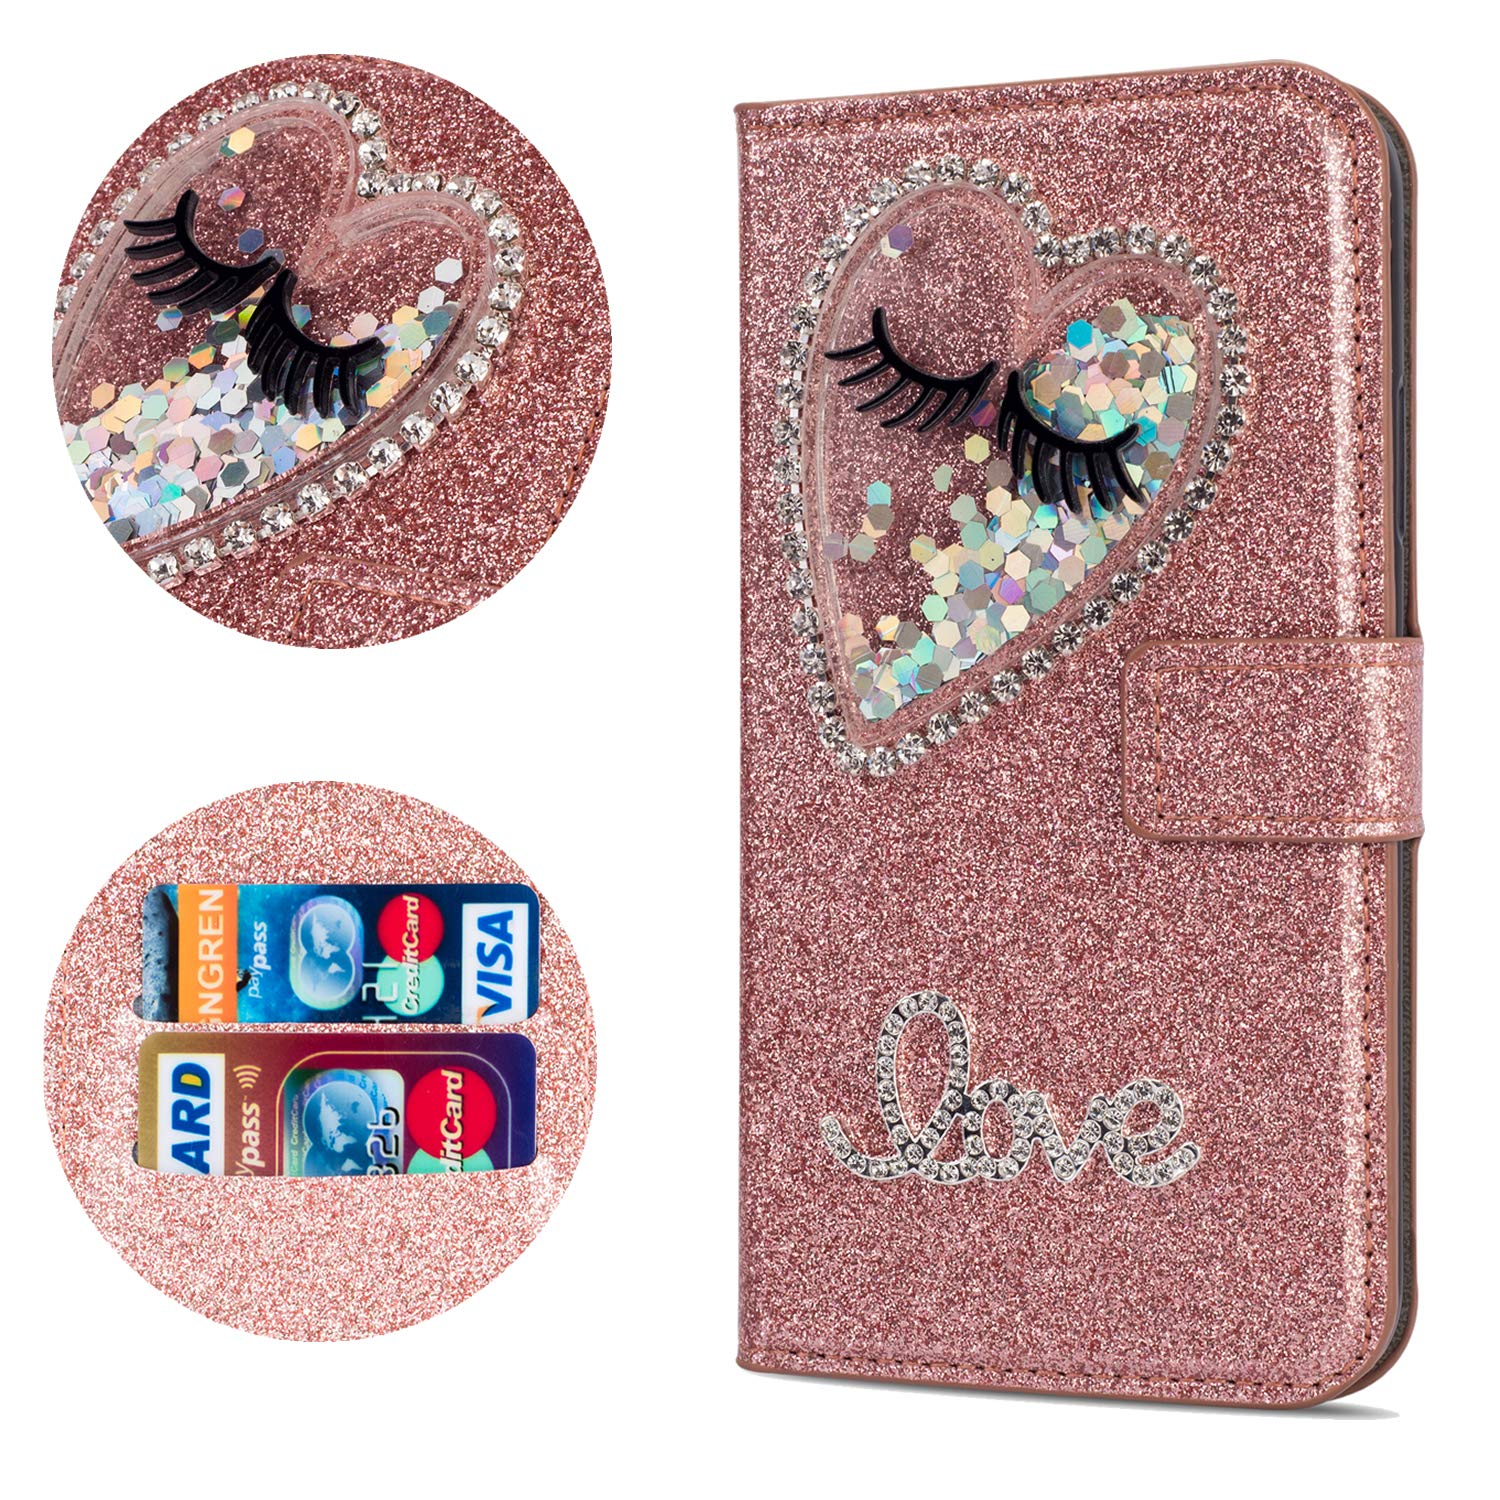 Stysen Flip Case for iPhone 6S 4.7'',Leather Cover with 3D Handmade Diamond Heart Sequins Glitter Shiny Wallet Magnetic Clasp for iPhone 6S/6 4.7'' by Stysen